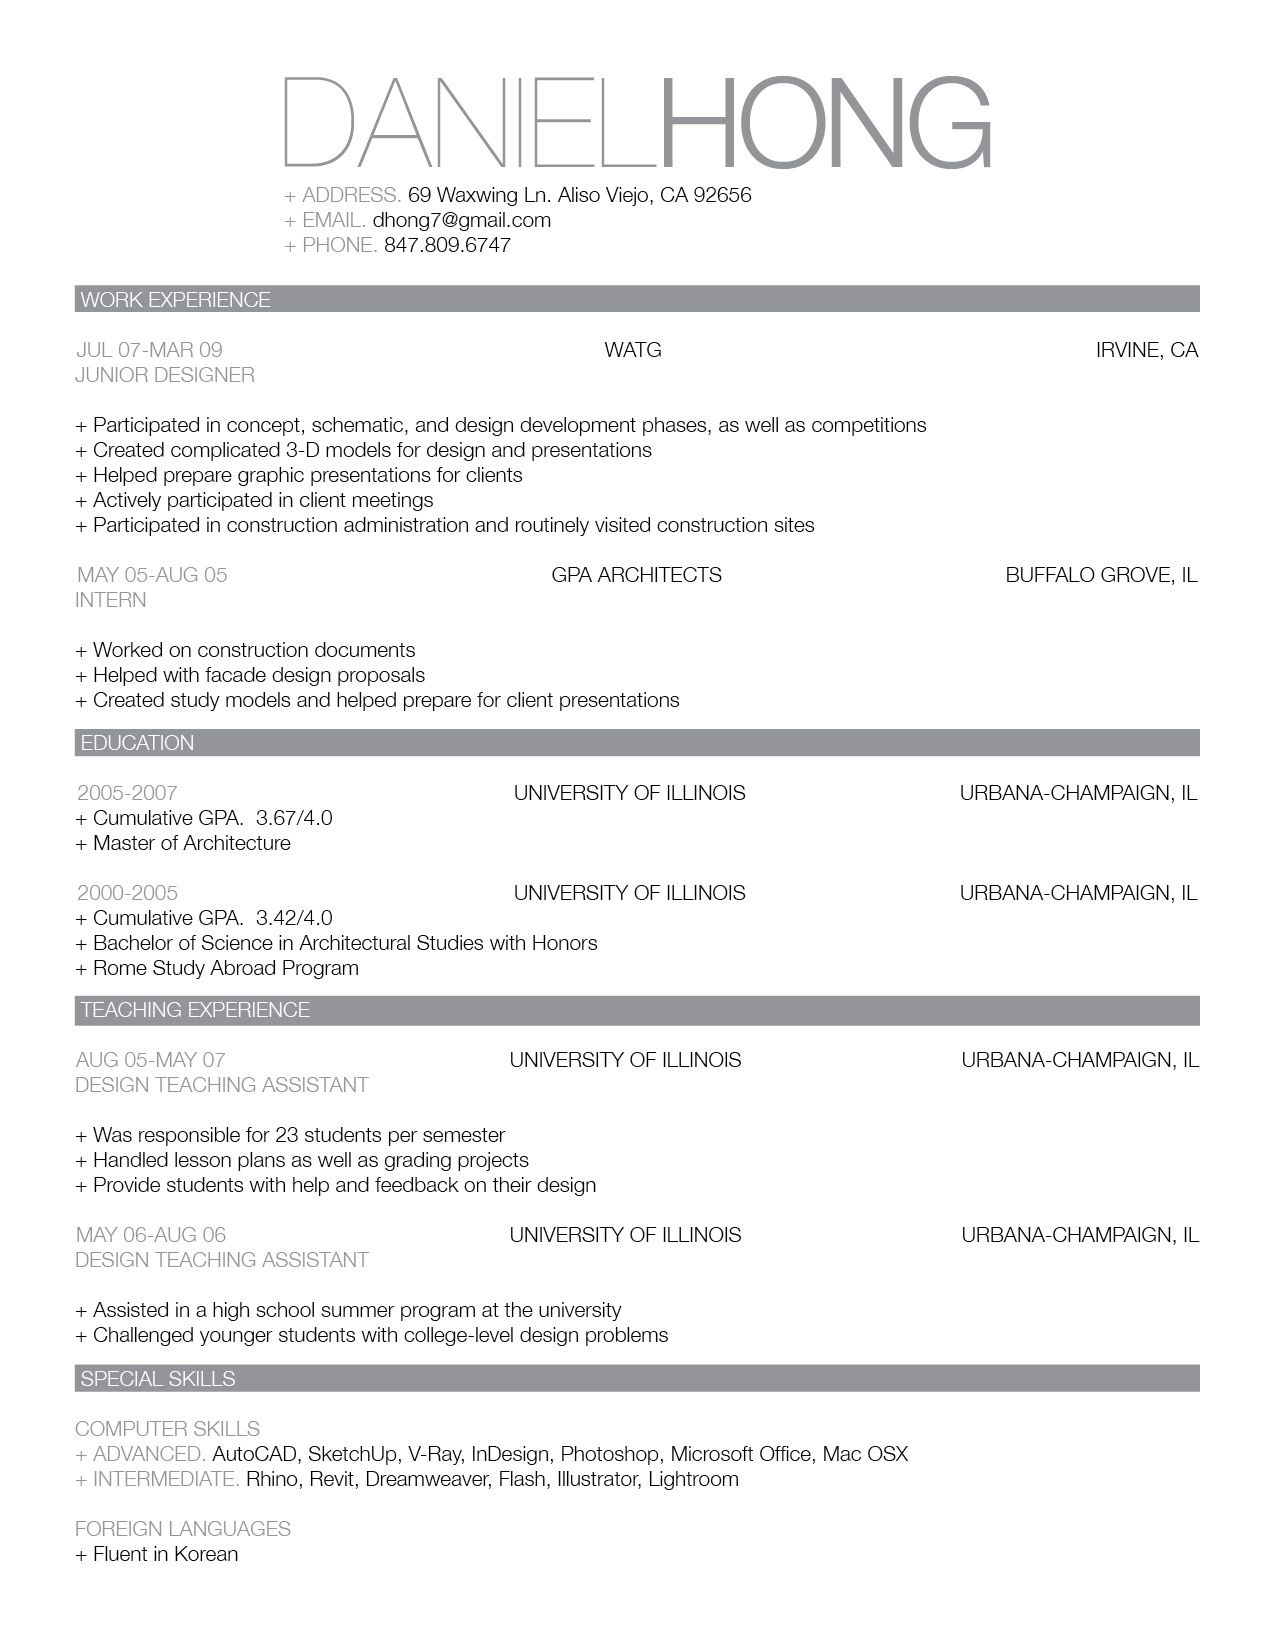 Sample Resume Formats Updated Cv And Work Sample  Professional Resume Sample Resume